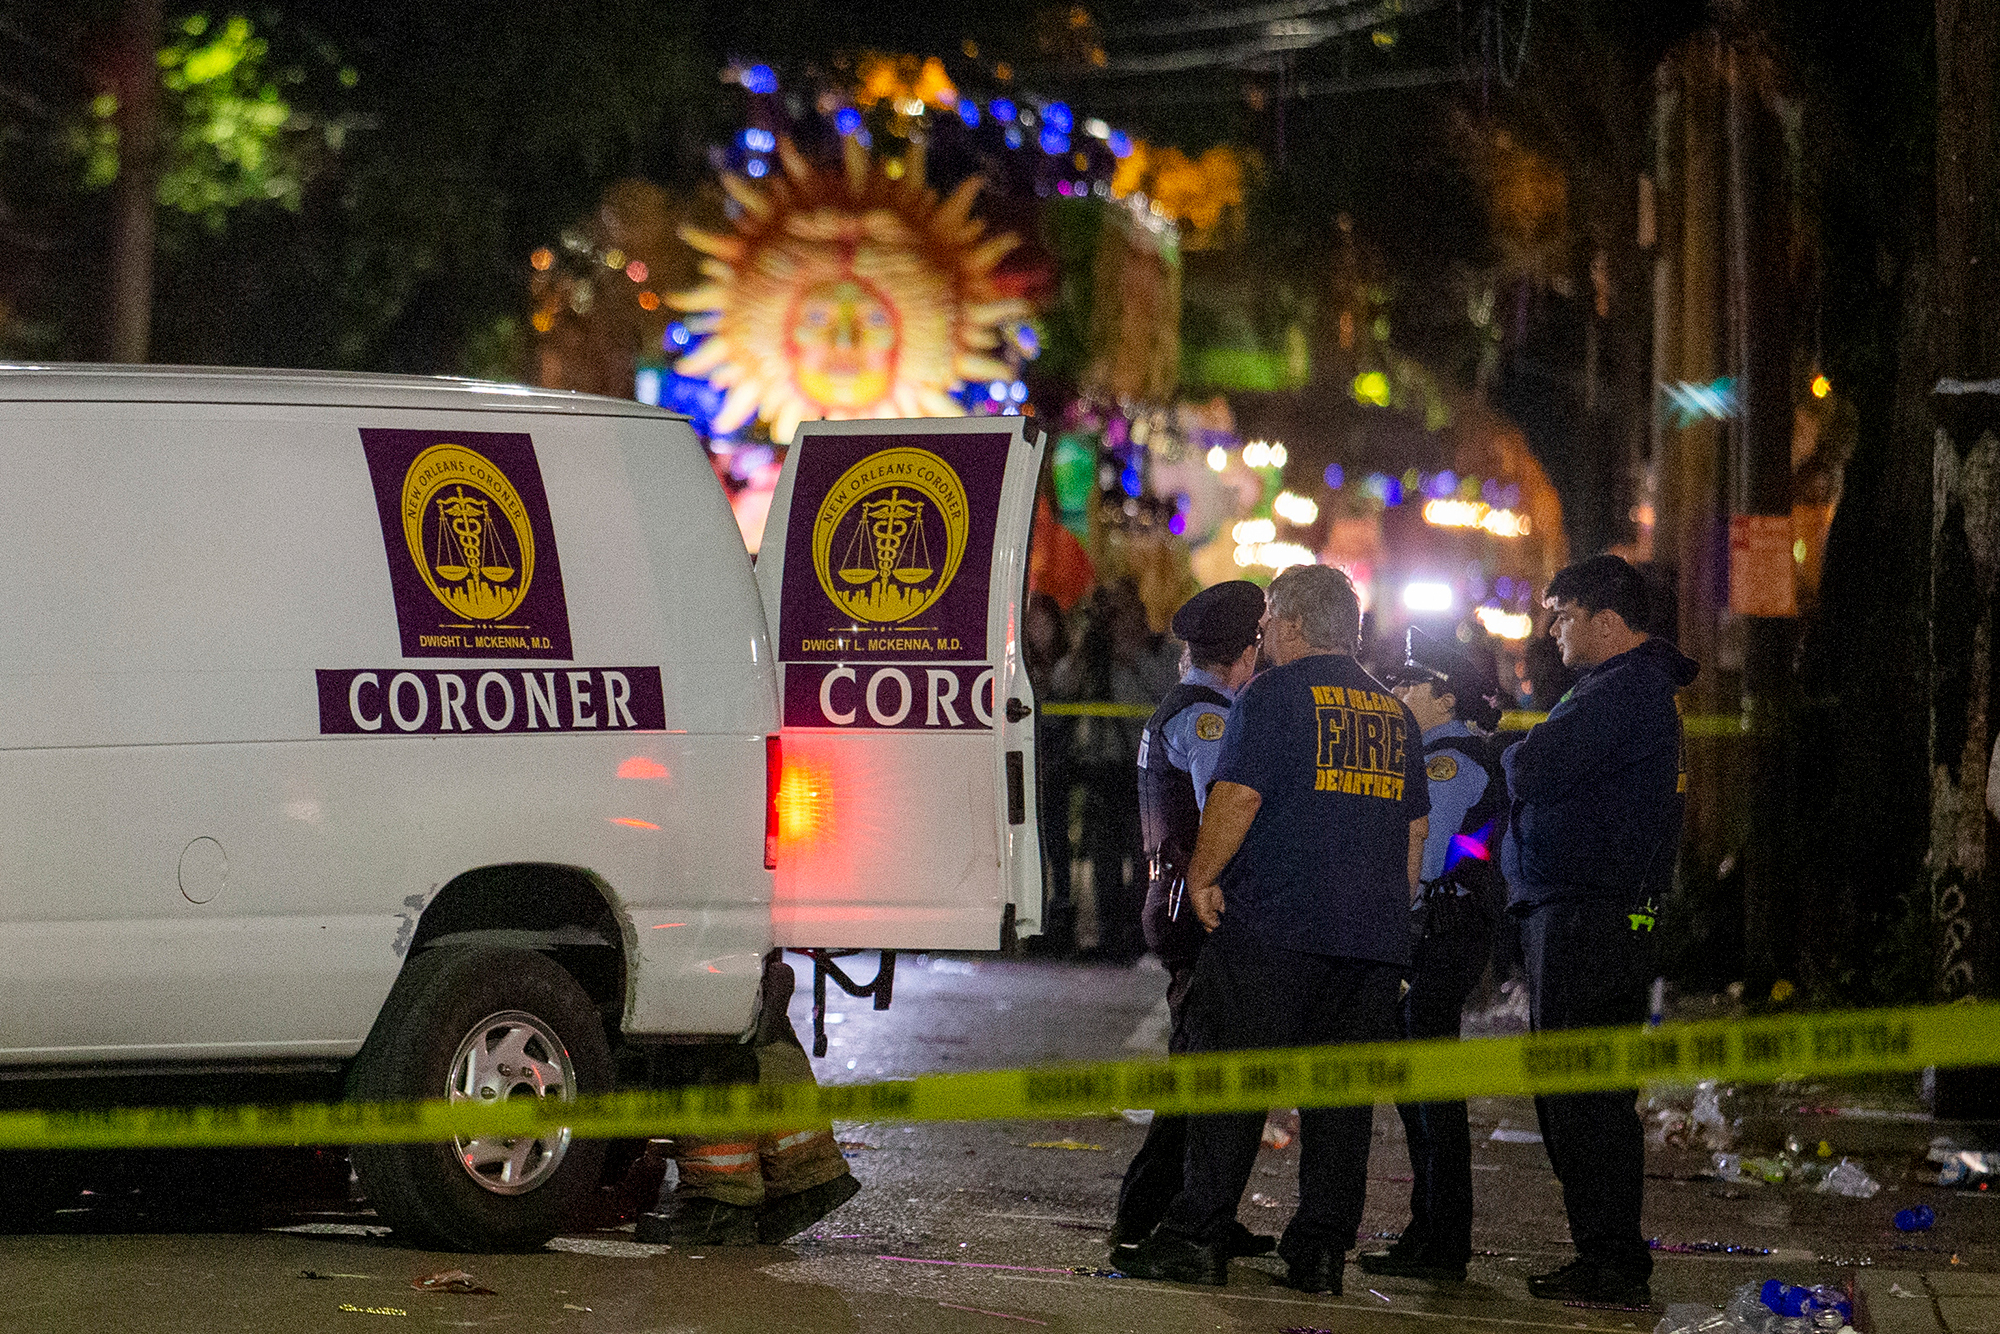 A woman died after being hit by a float in New Orleans Nyx parade